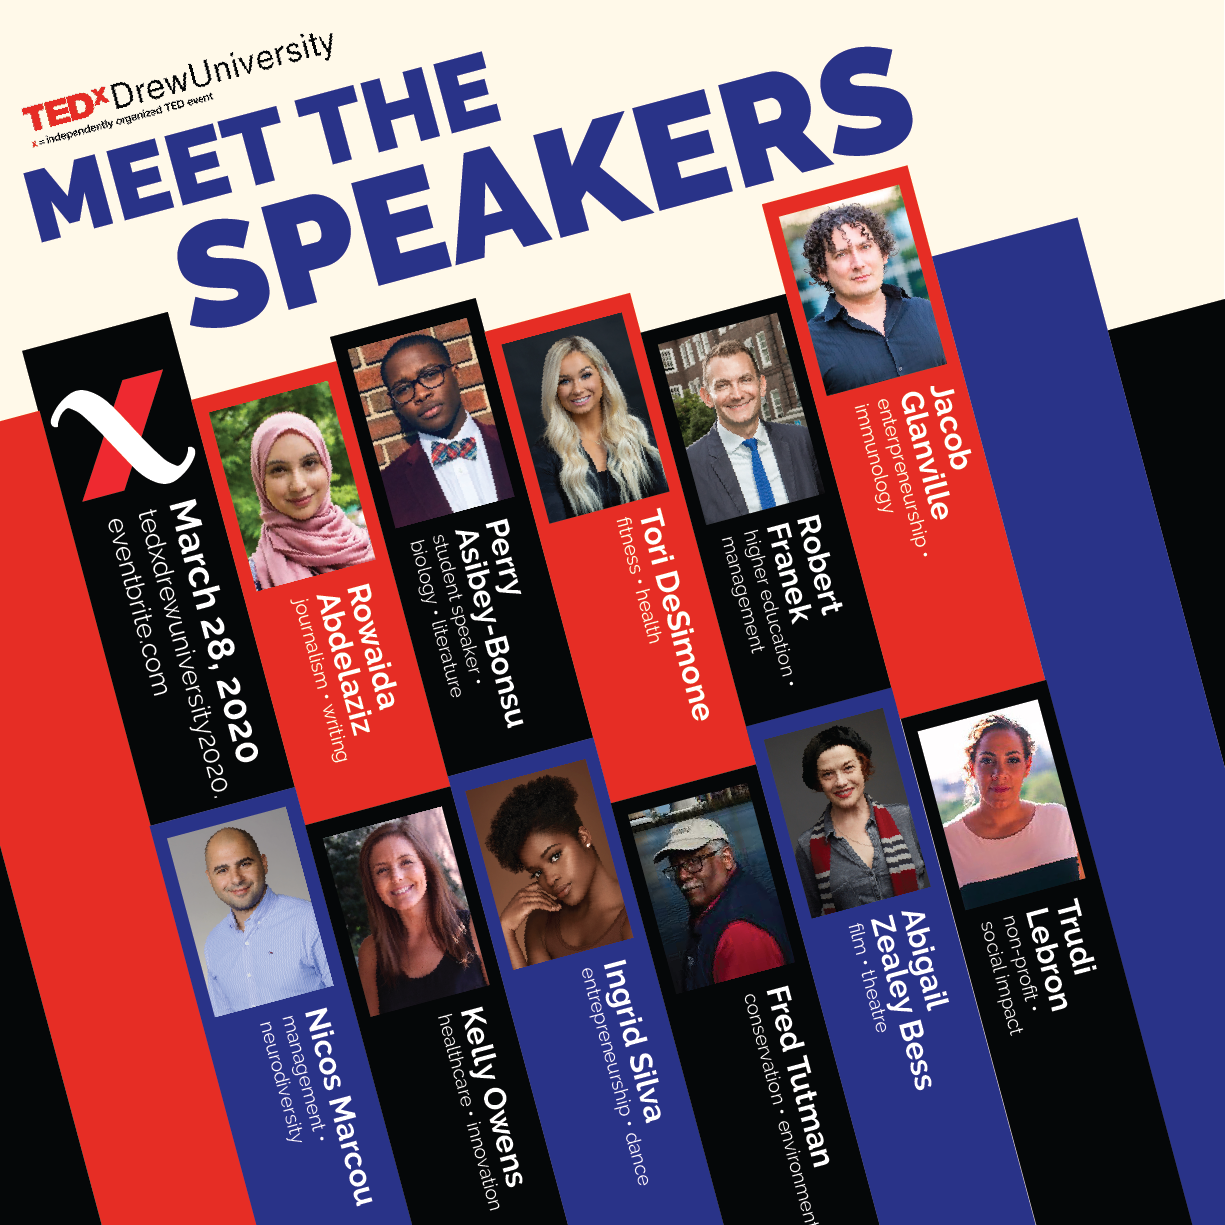 speakers-poster-02